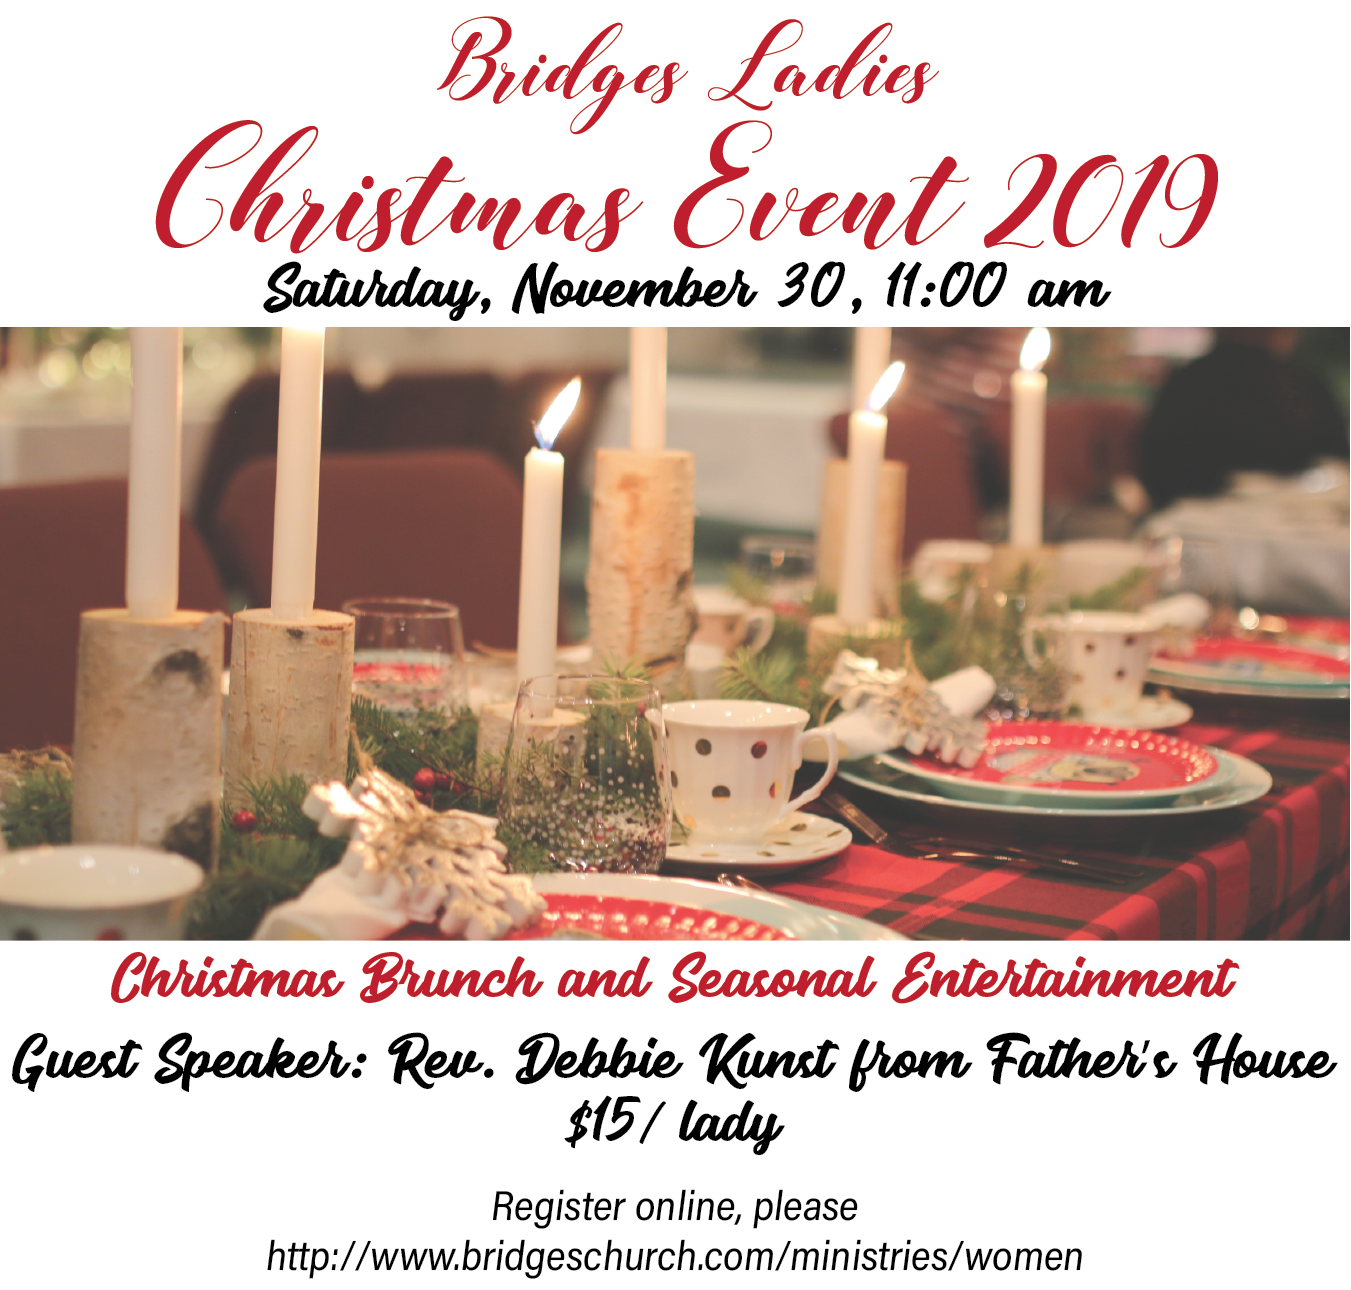 bridges Ladies Christmas Event 2019 - 11:00 AM